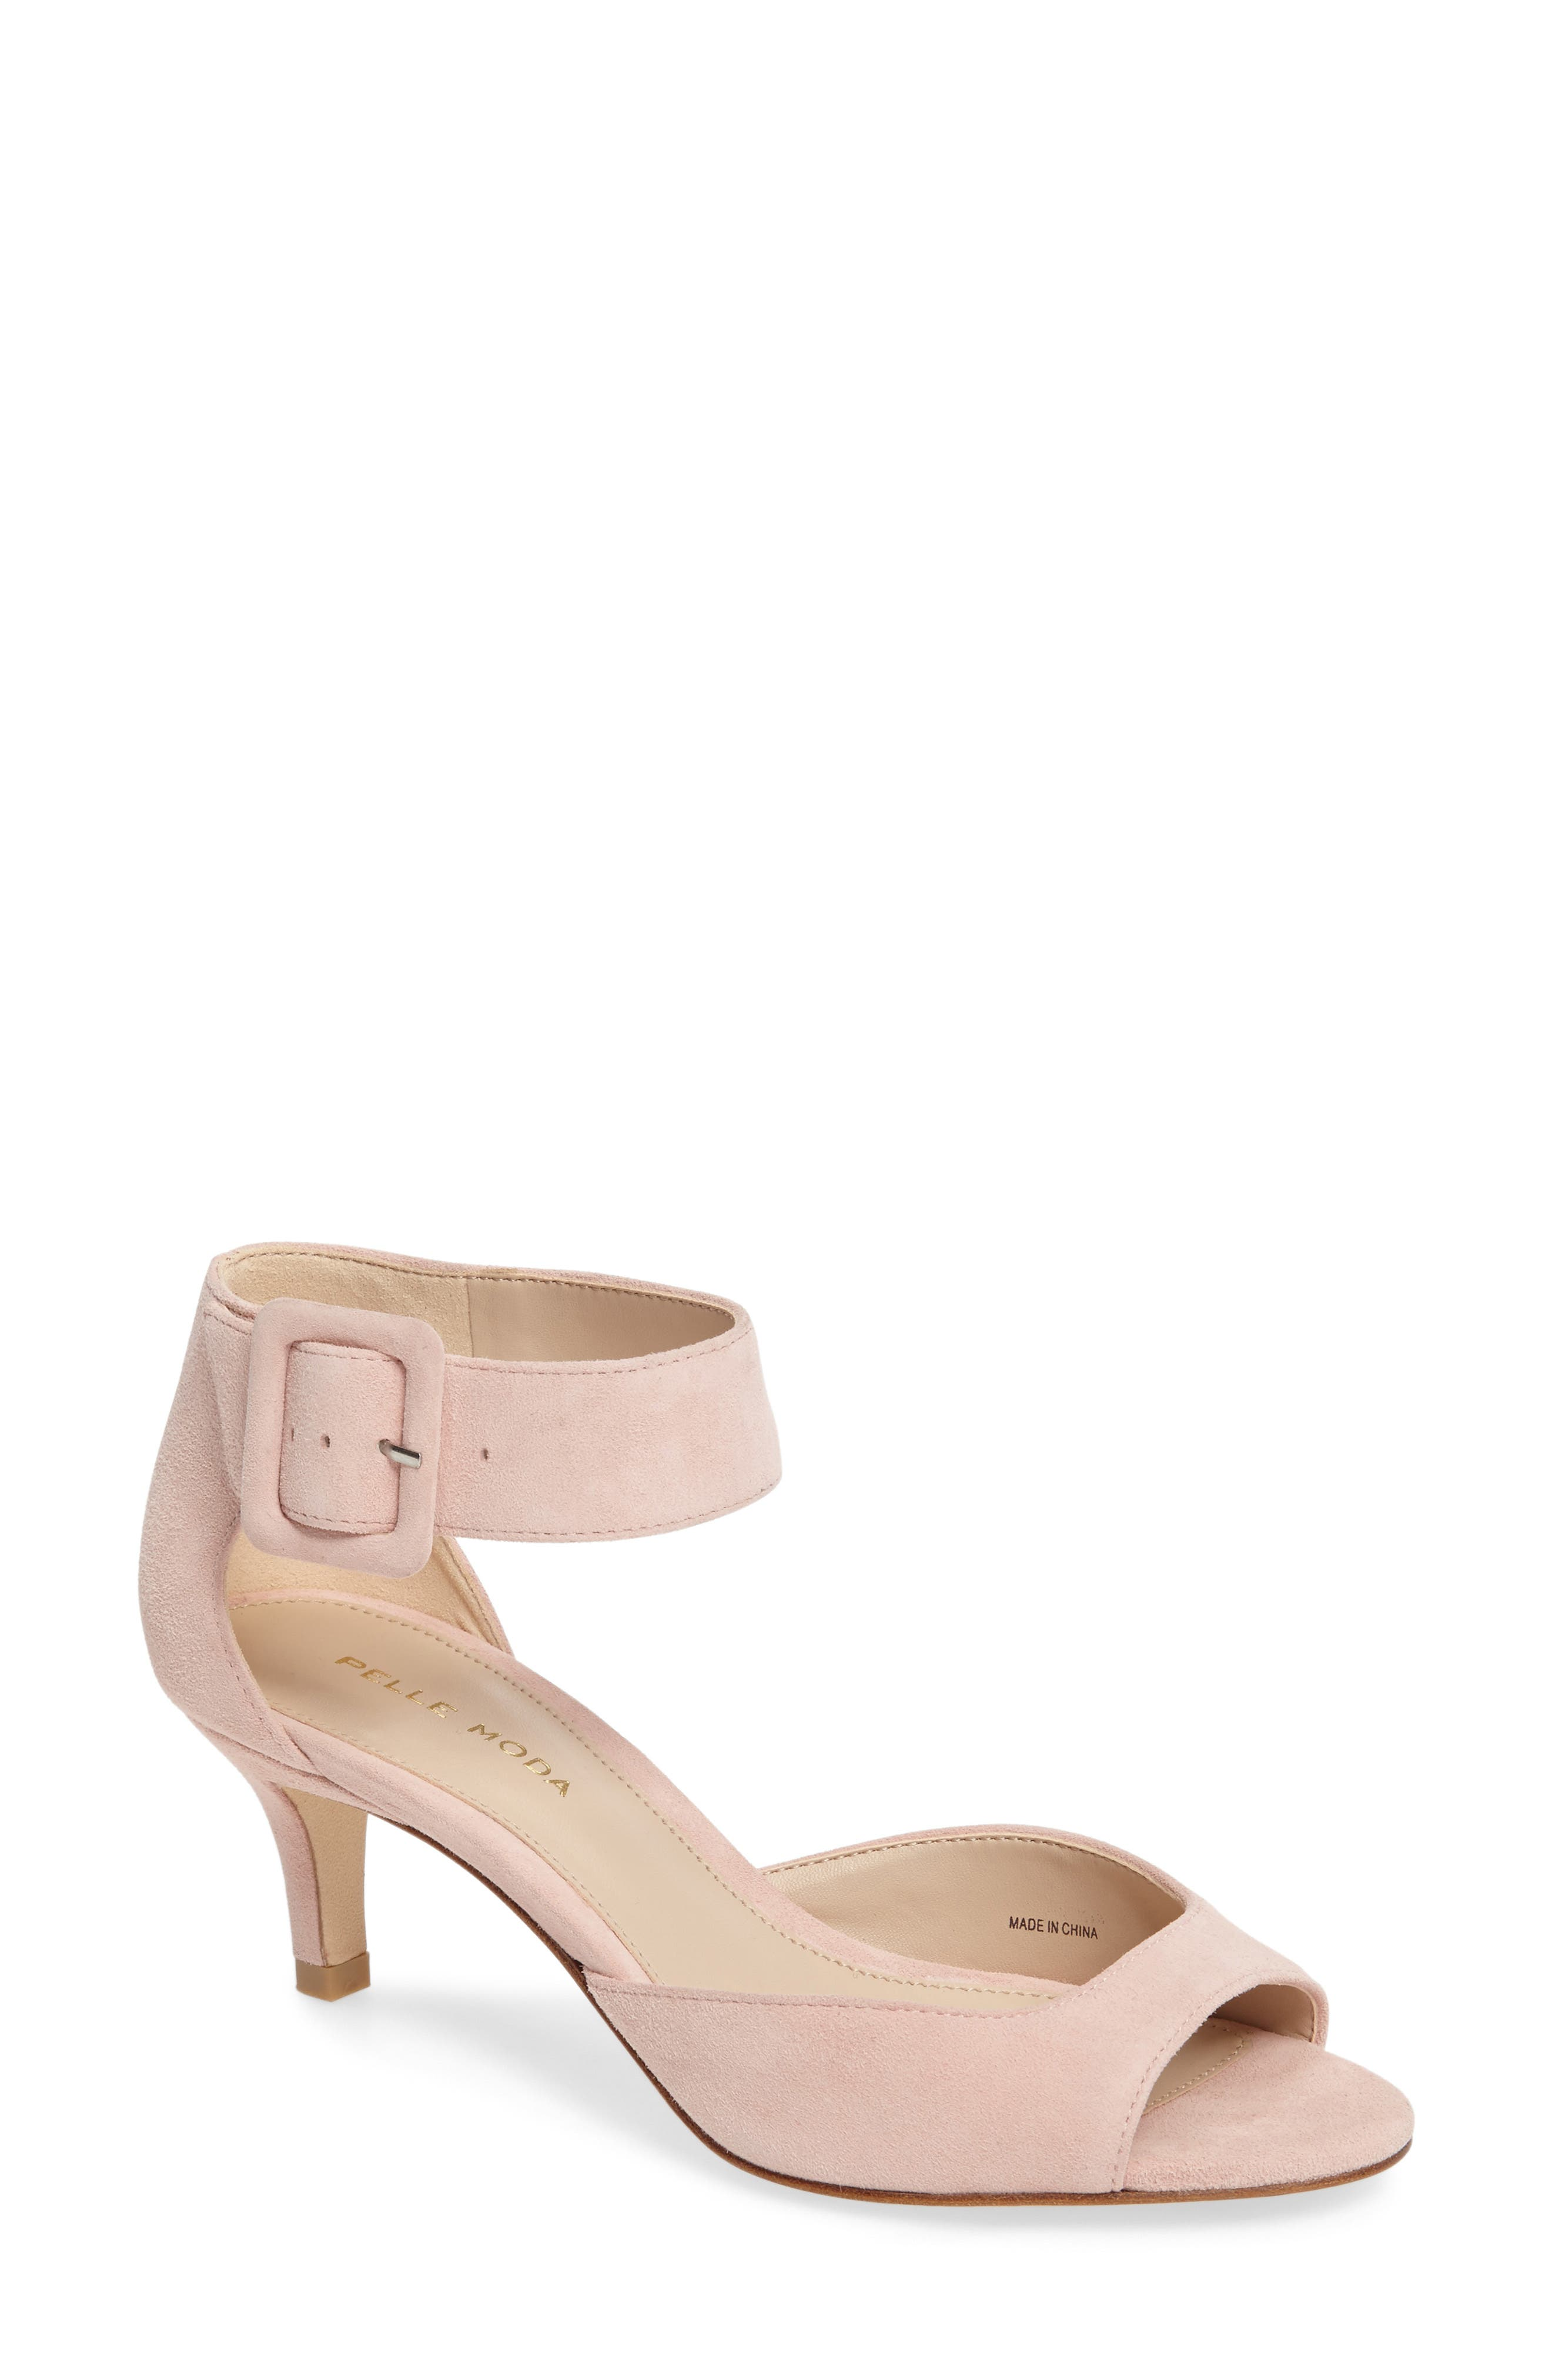 'Berlin' Ankle Strap Sandal,                         Main,                         color, Pale Pink Leather